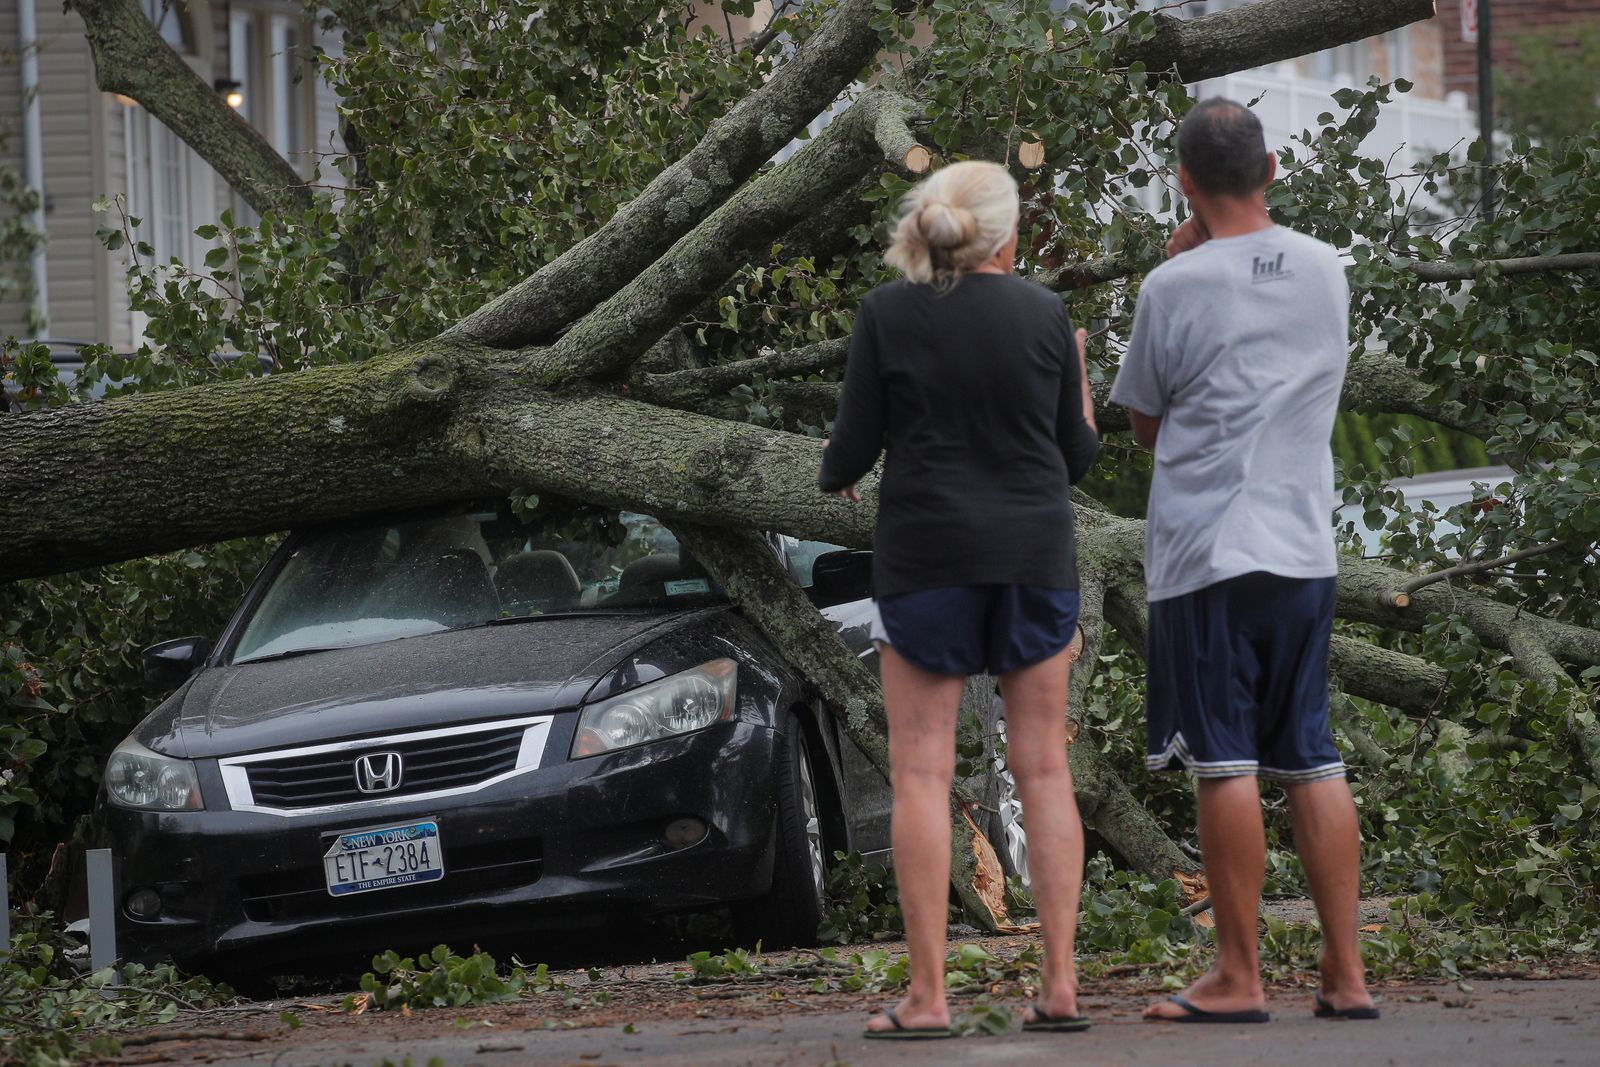 People look at a fallen tree on a car in the aftermath of Tropical Storm Isaias in the Rockaway area of Queens in New York